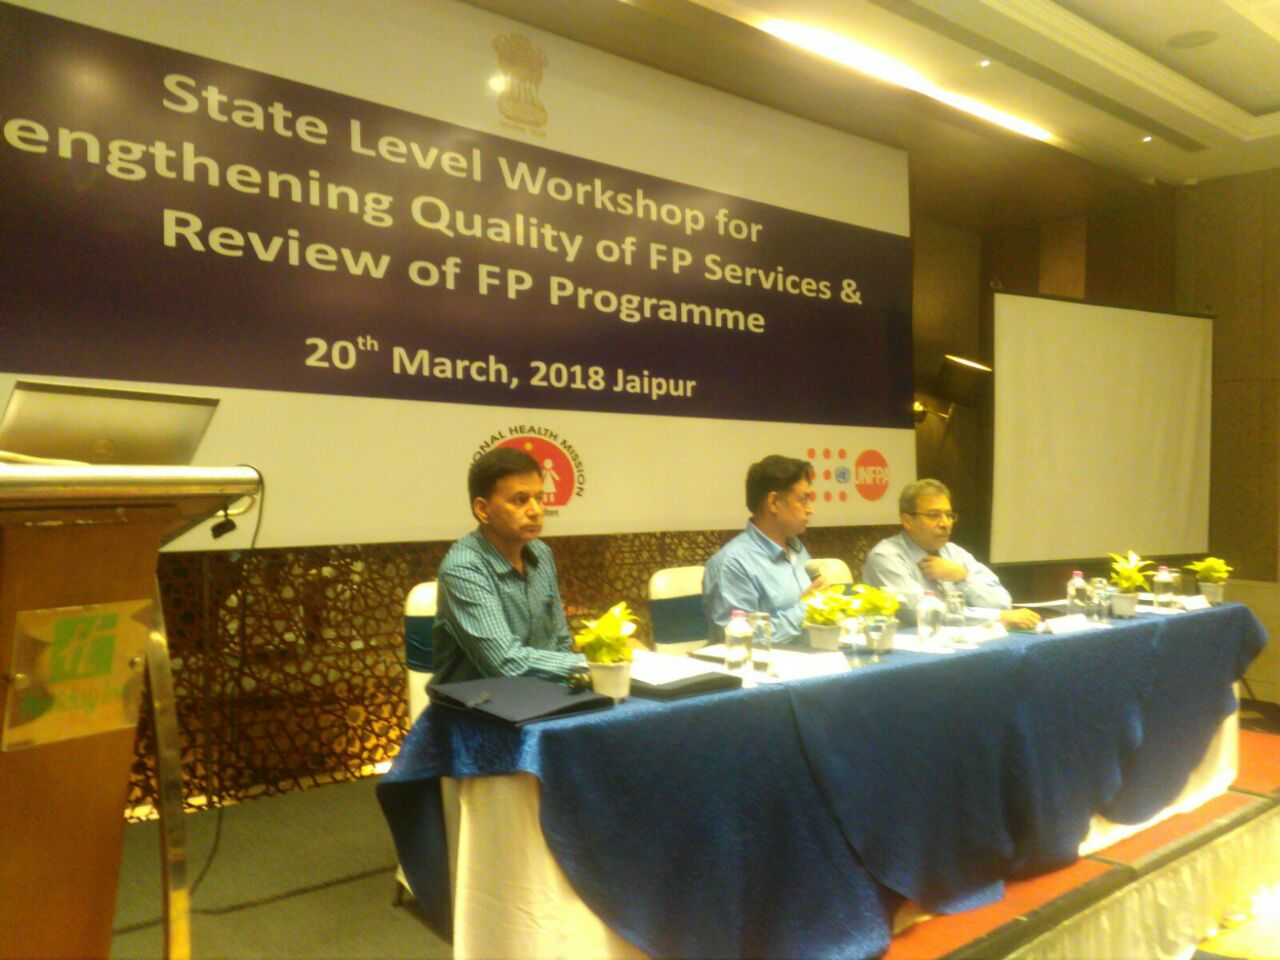 State level review on quality family planning services recently held at Jaipur, Rajasthan